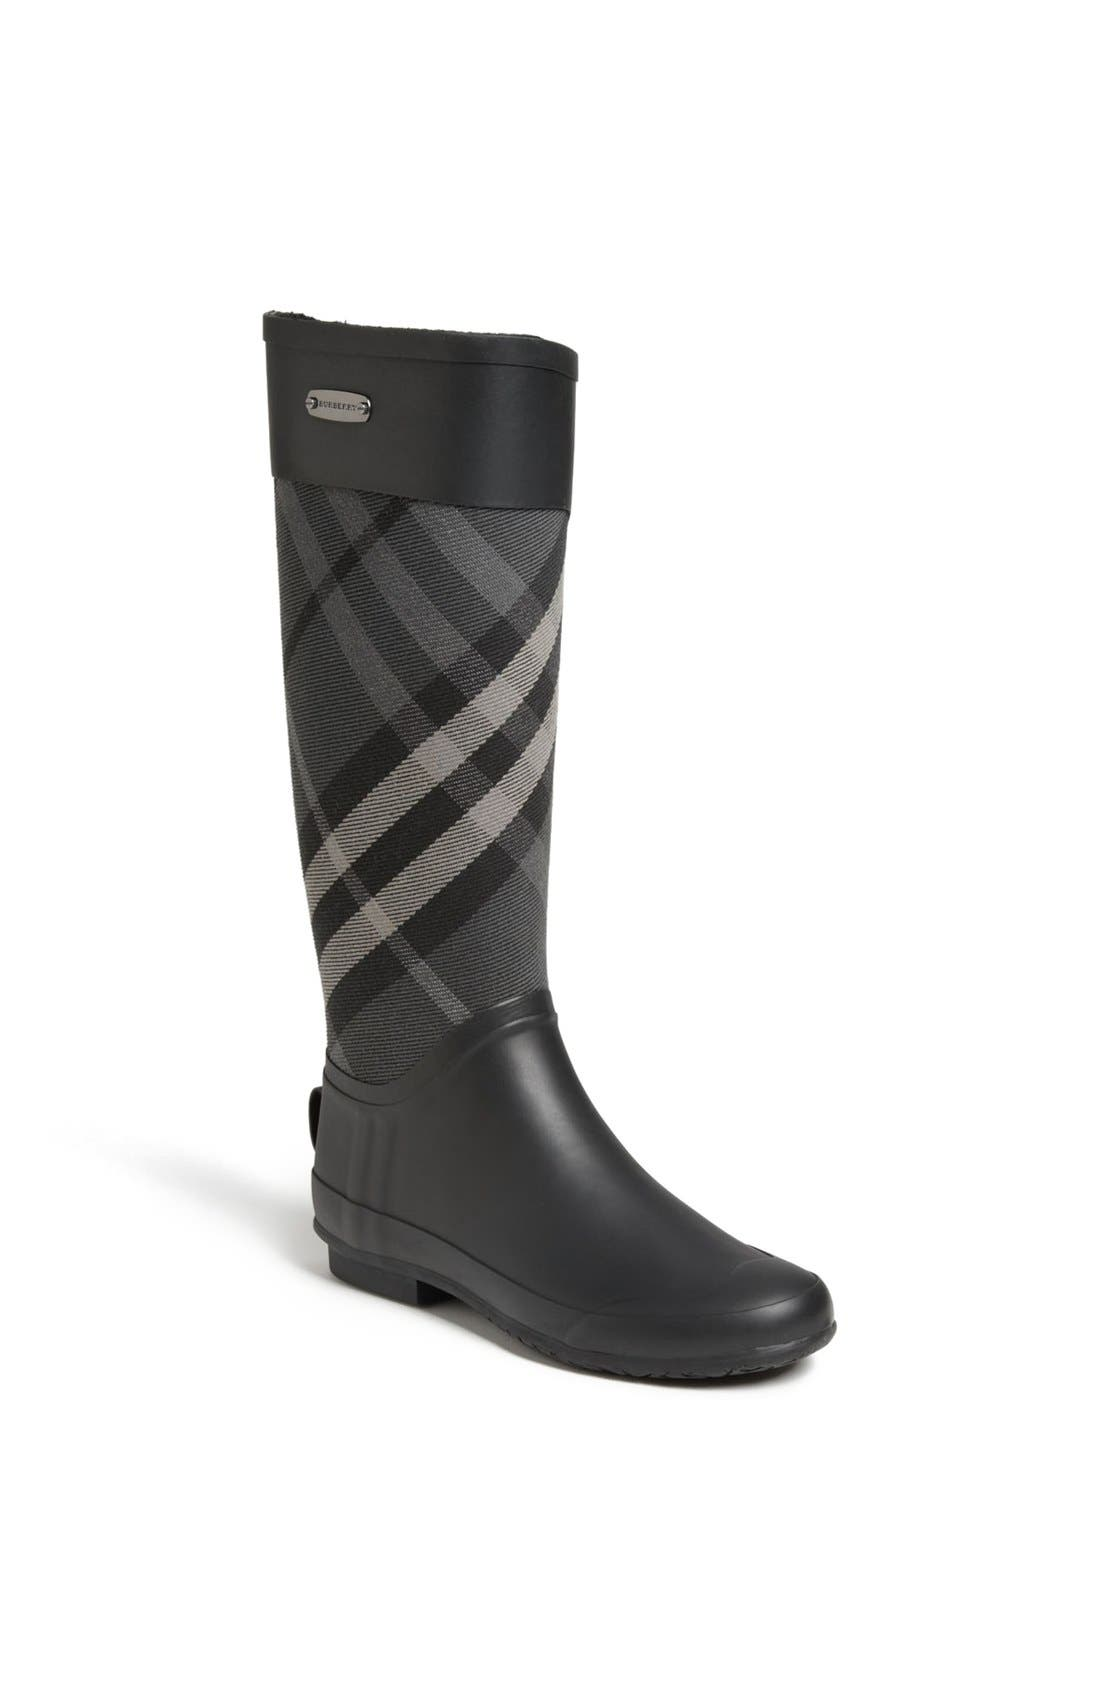 Alternate Image 1 Selected - Burberry Clemence Rain Boot (Women)